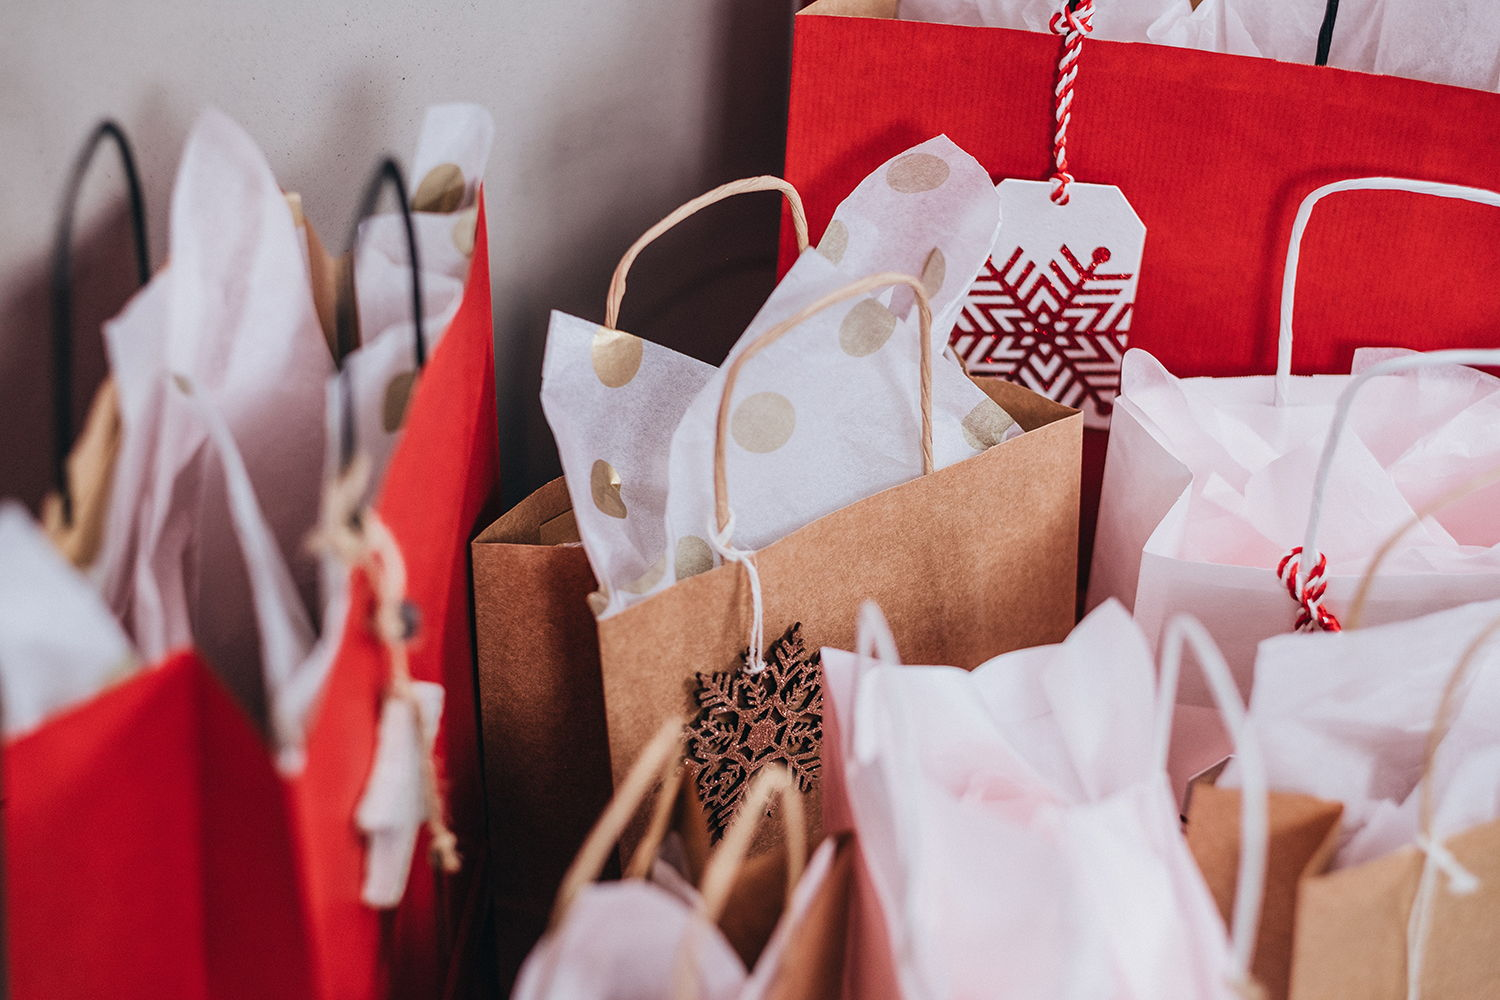 & 10 Safe Gift Ideas for the Office Gift Swap